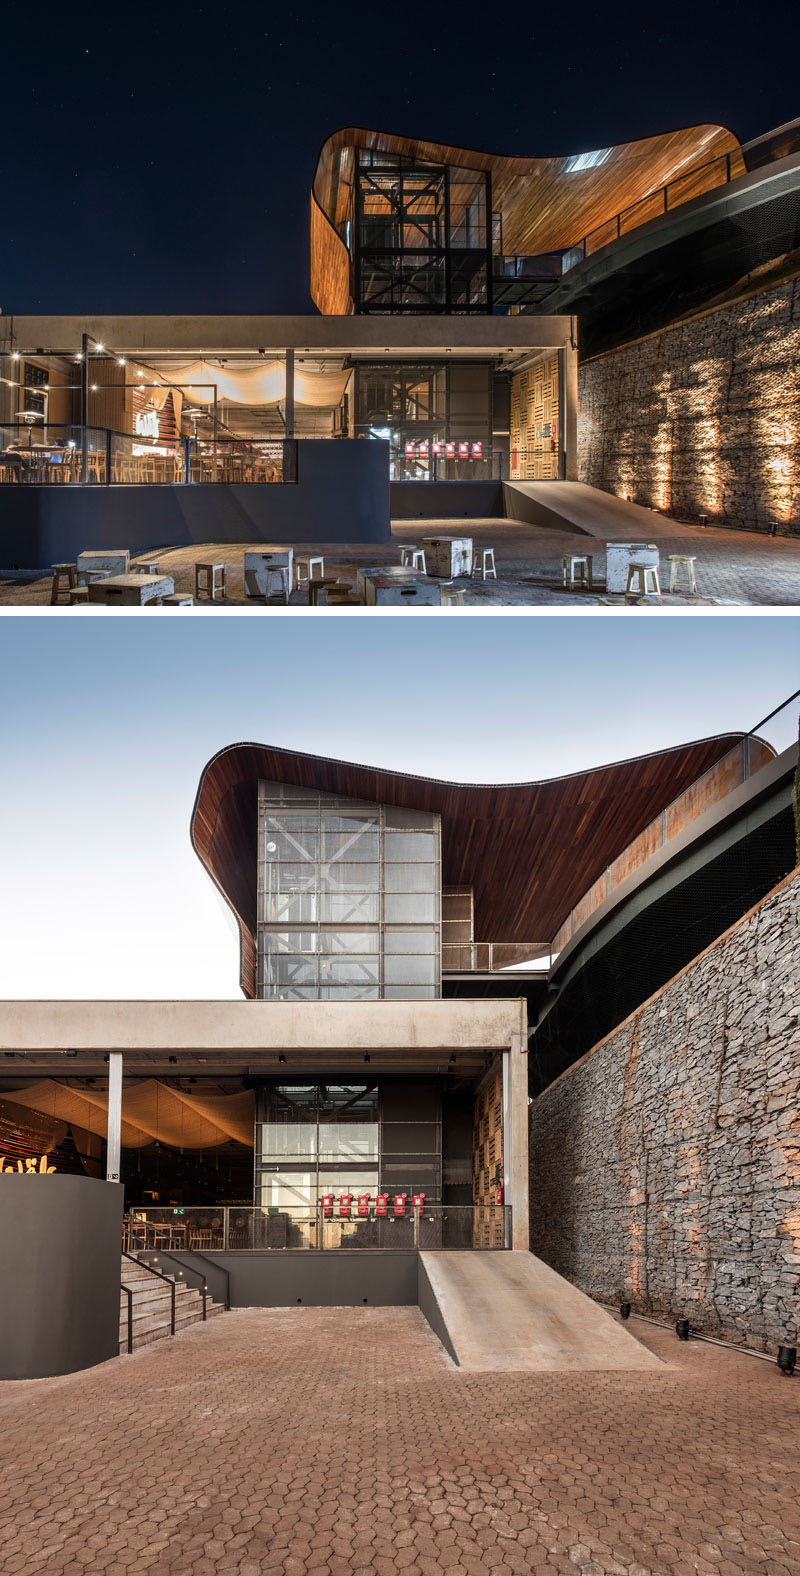 This modern brewery, which features a large sculptural wood roof, includes a restaurant, shop, office, wine cellar, beer factory and an outdoor area for food trucks. #Brewery #ModernArchitecture #RetailDesign